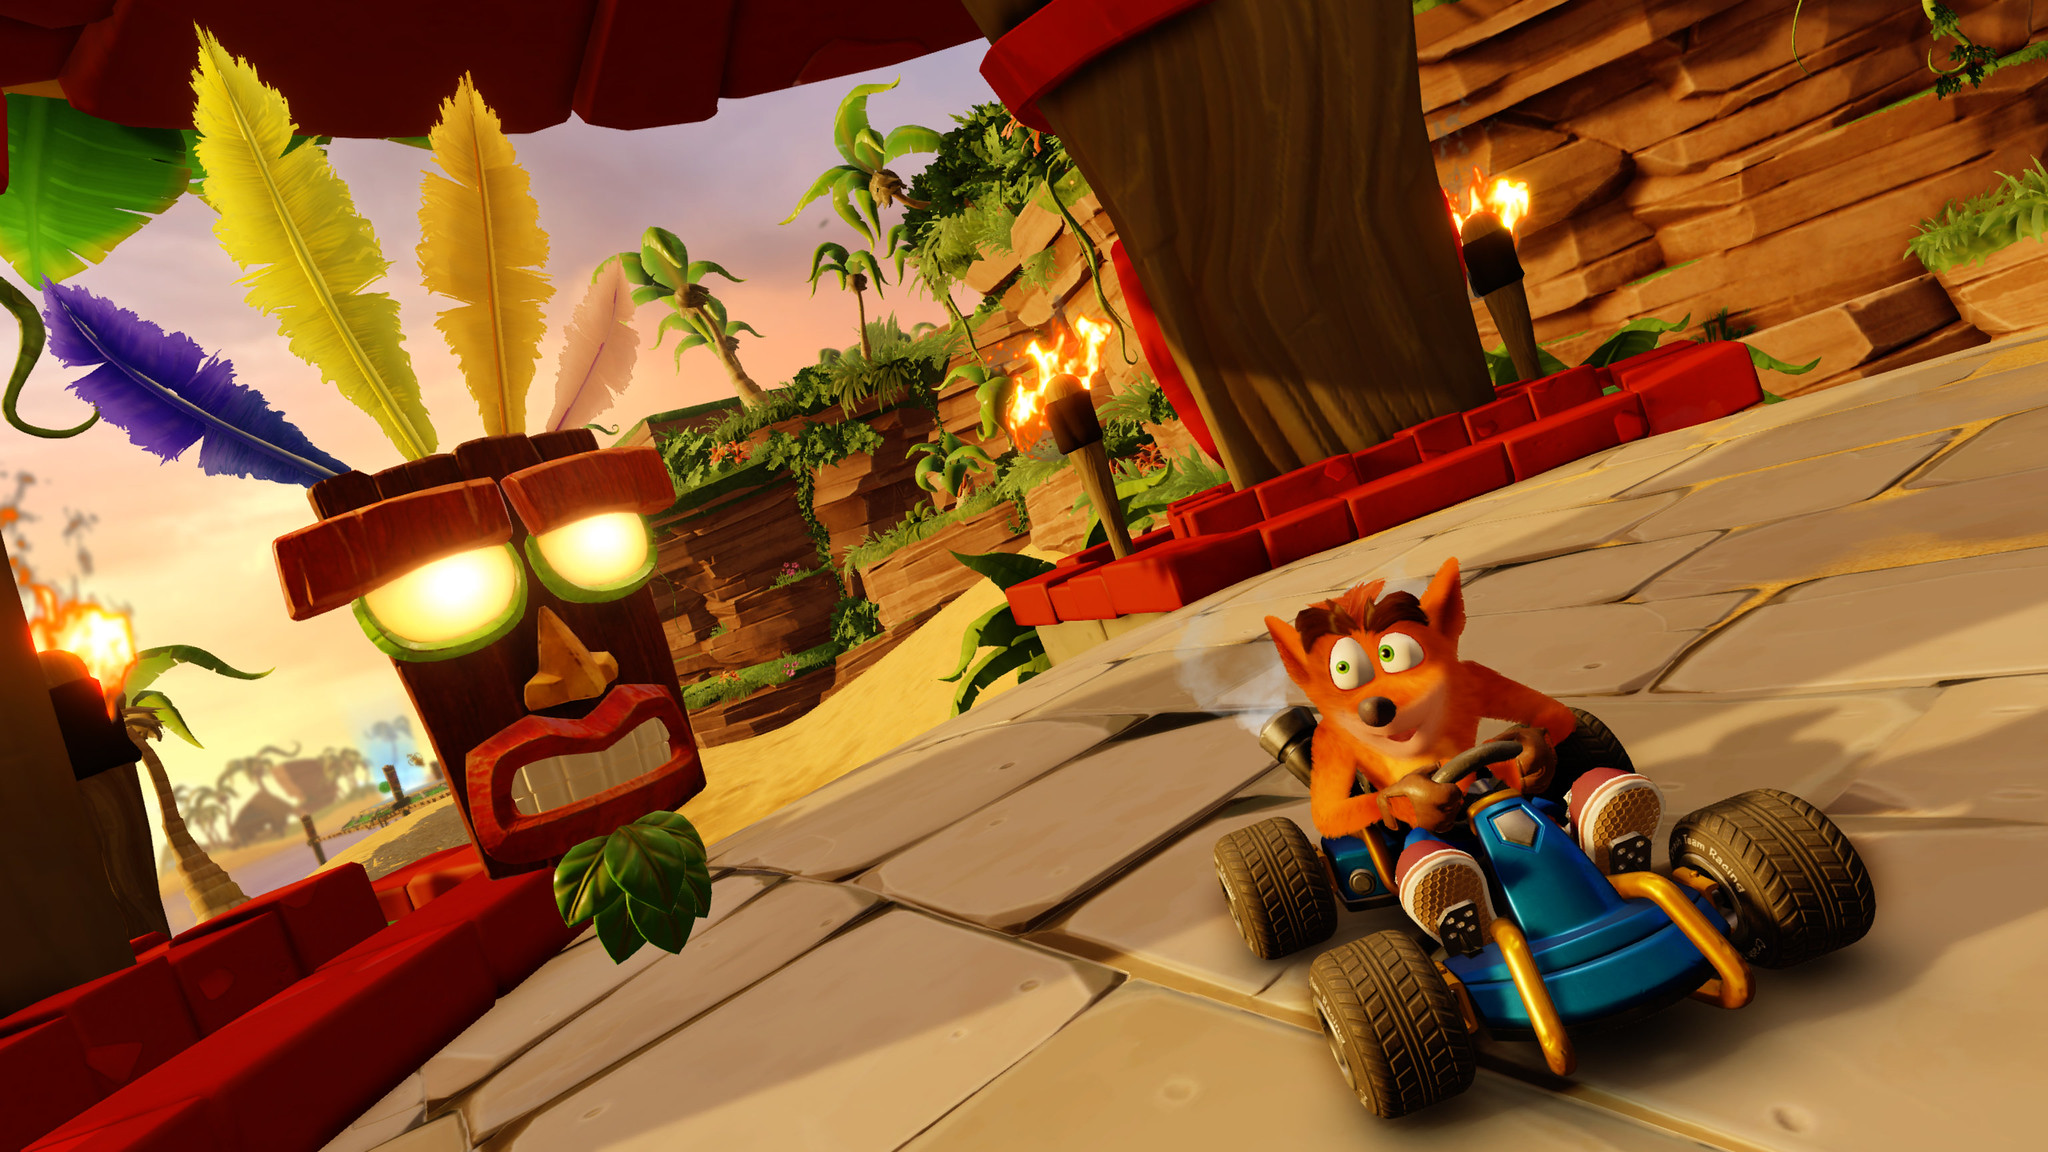 Summary -> Crash Tag Team Racing Cheats - stargate-rasa info